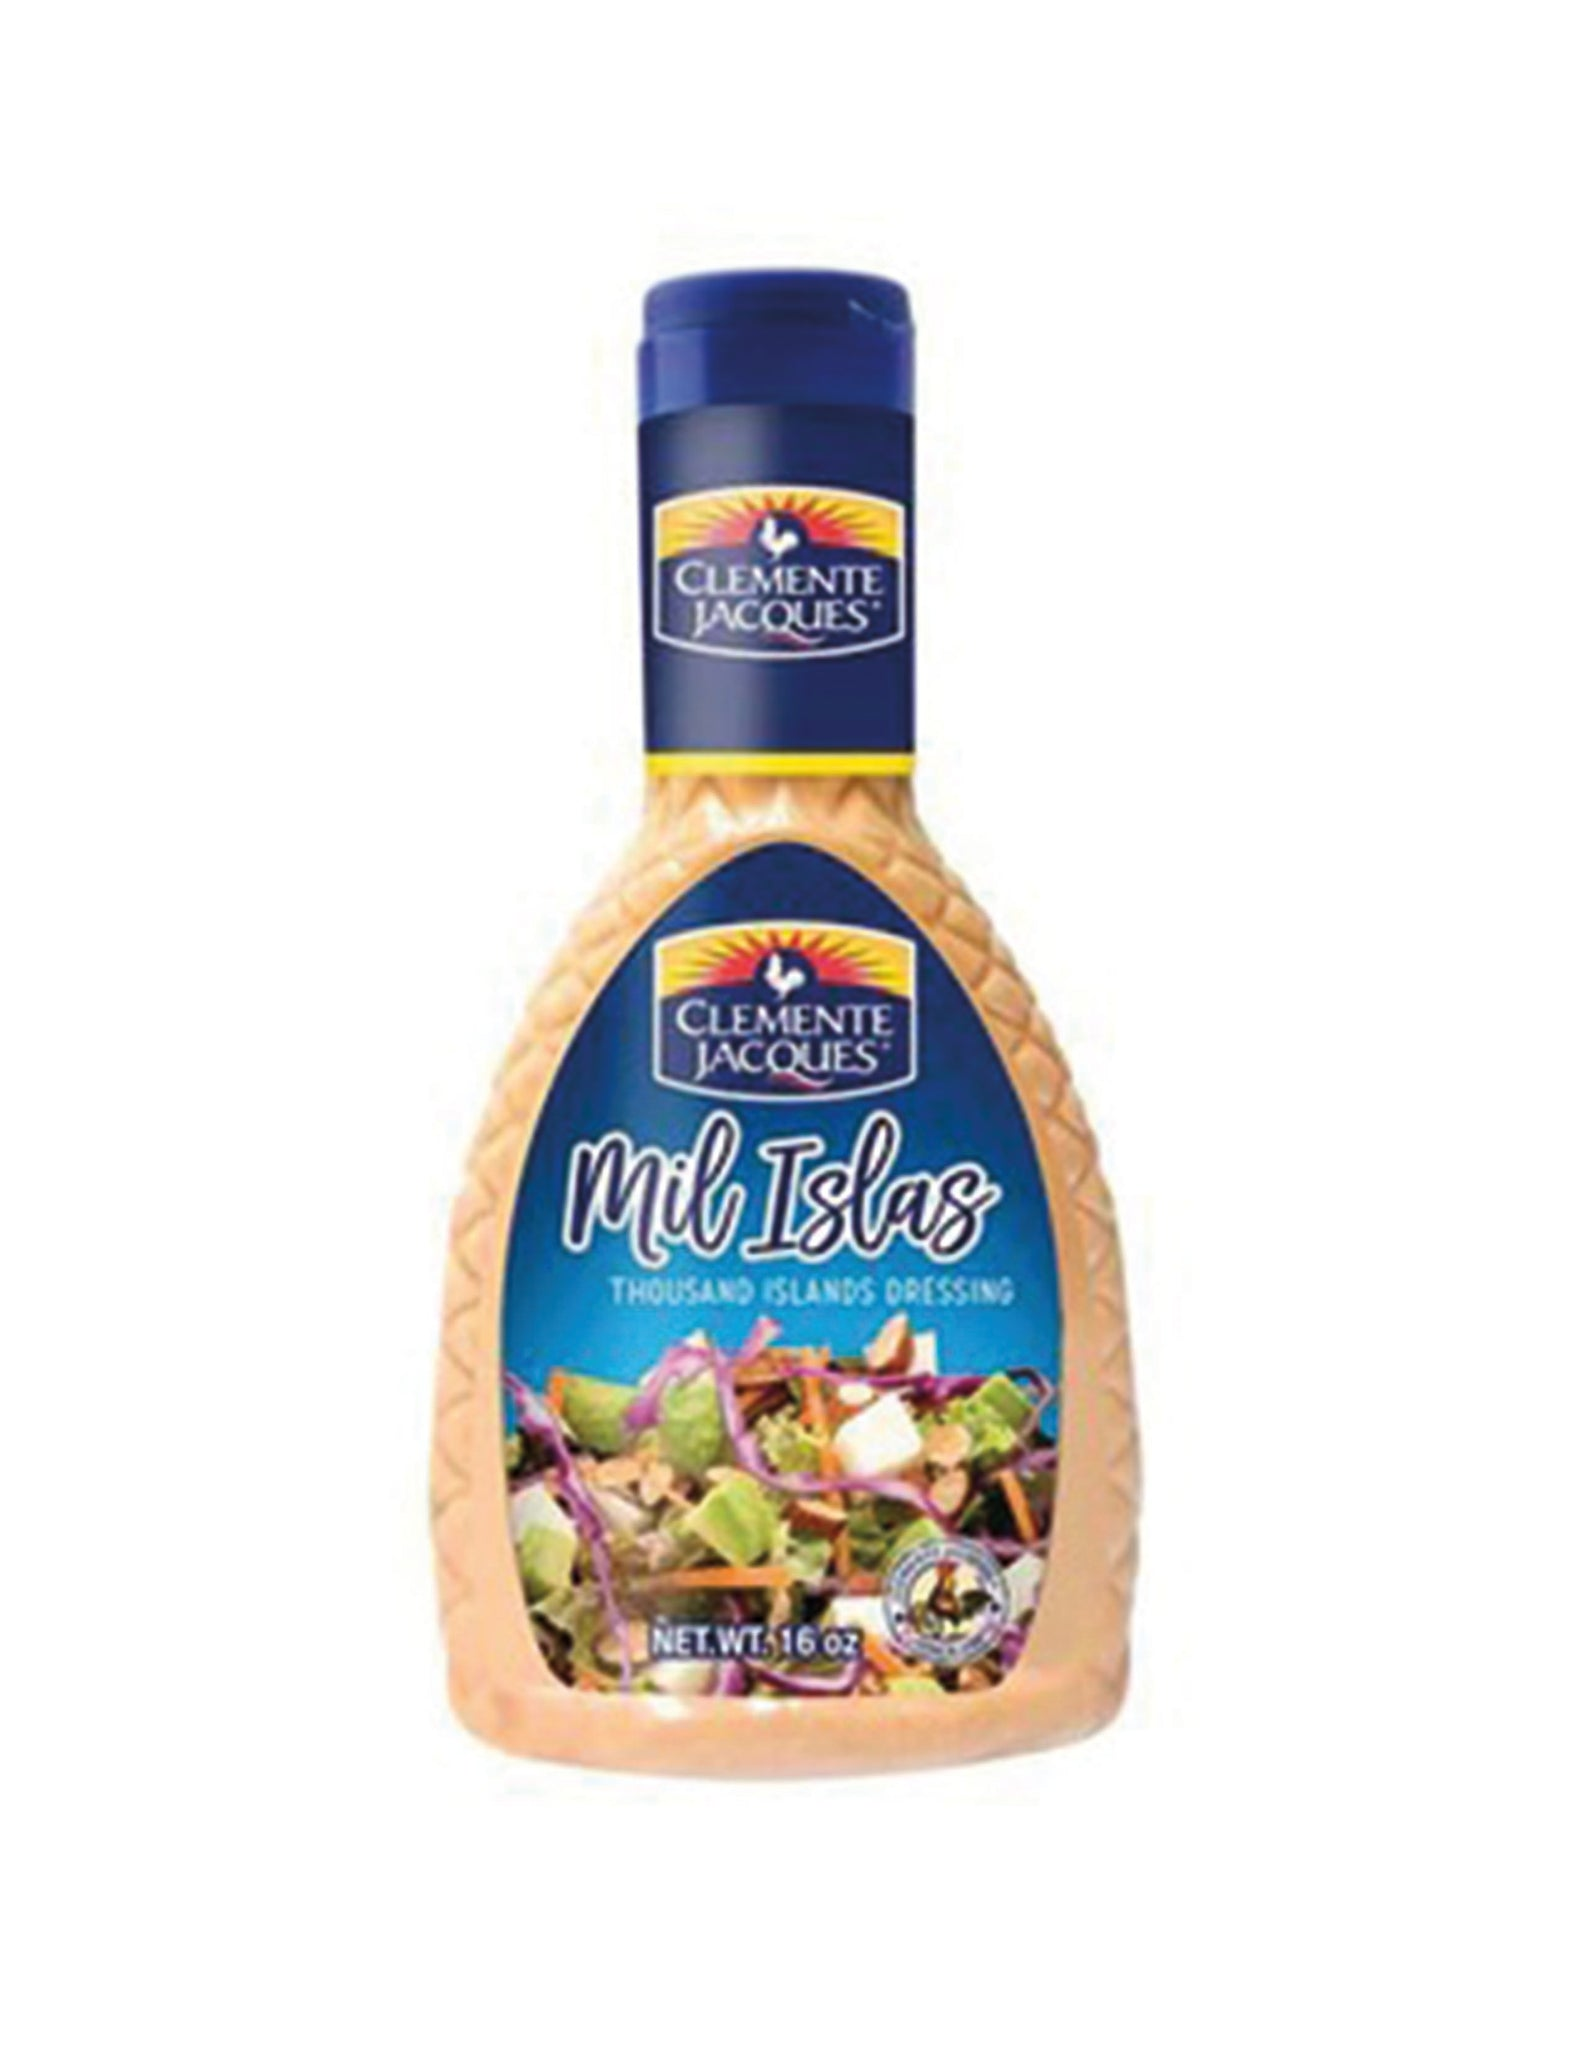 bel>Clement Jacques Salad Dressing Thousand Isle